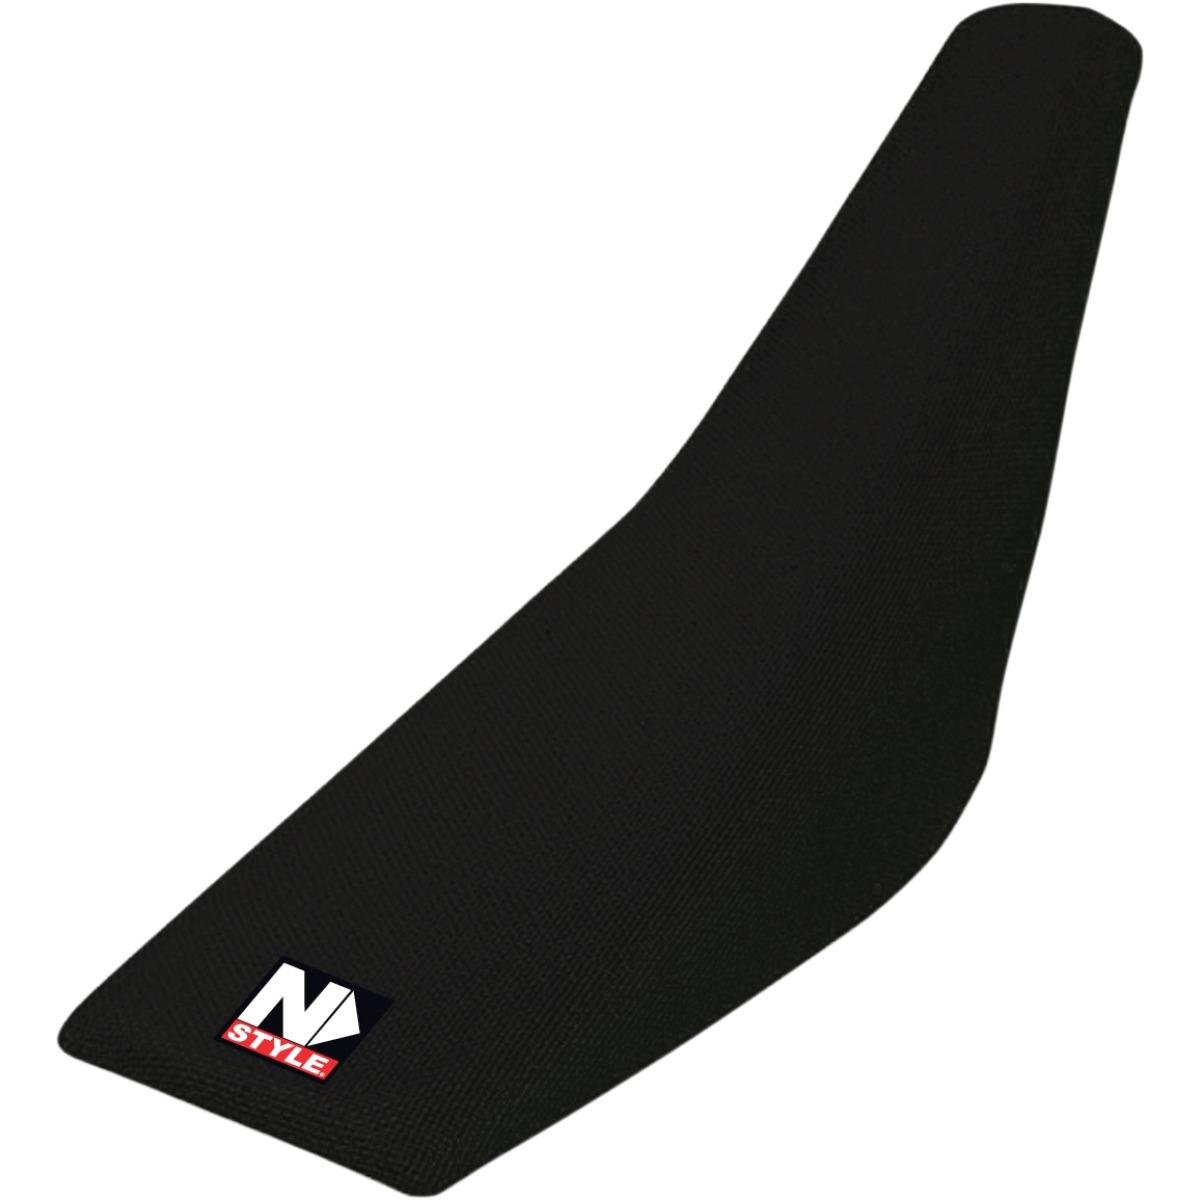 N-Style All Trac 2 Full Grip Seat Cover - Yamaha PW50 1989-2009, 2012 - Black - N50-469